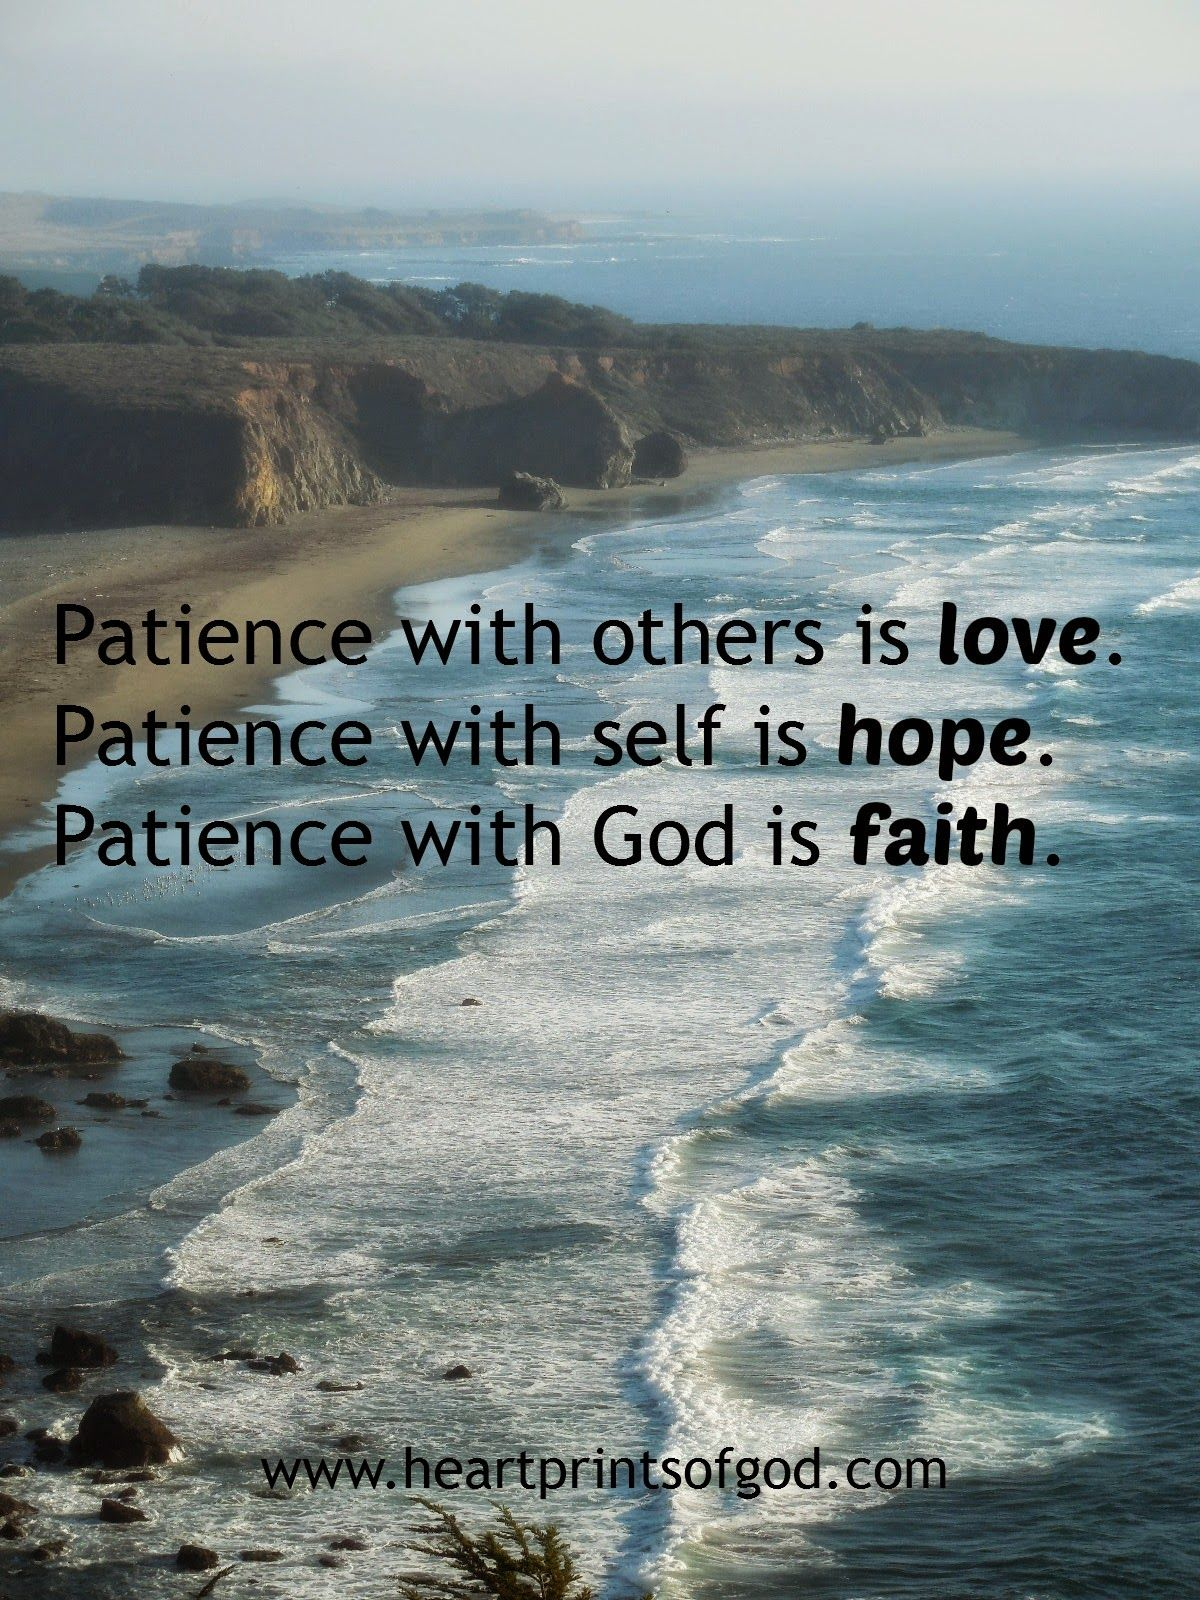 Heartprints Of God: The Love, Hope, And Faith Of Patience~u003c3 Good Looking